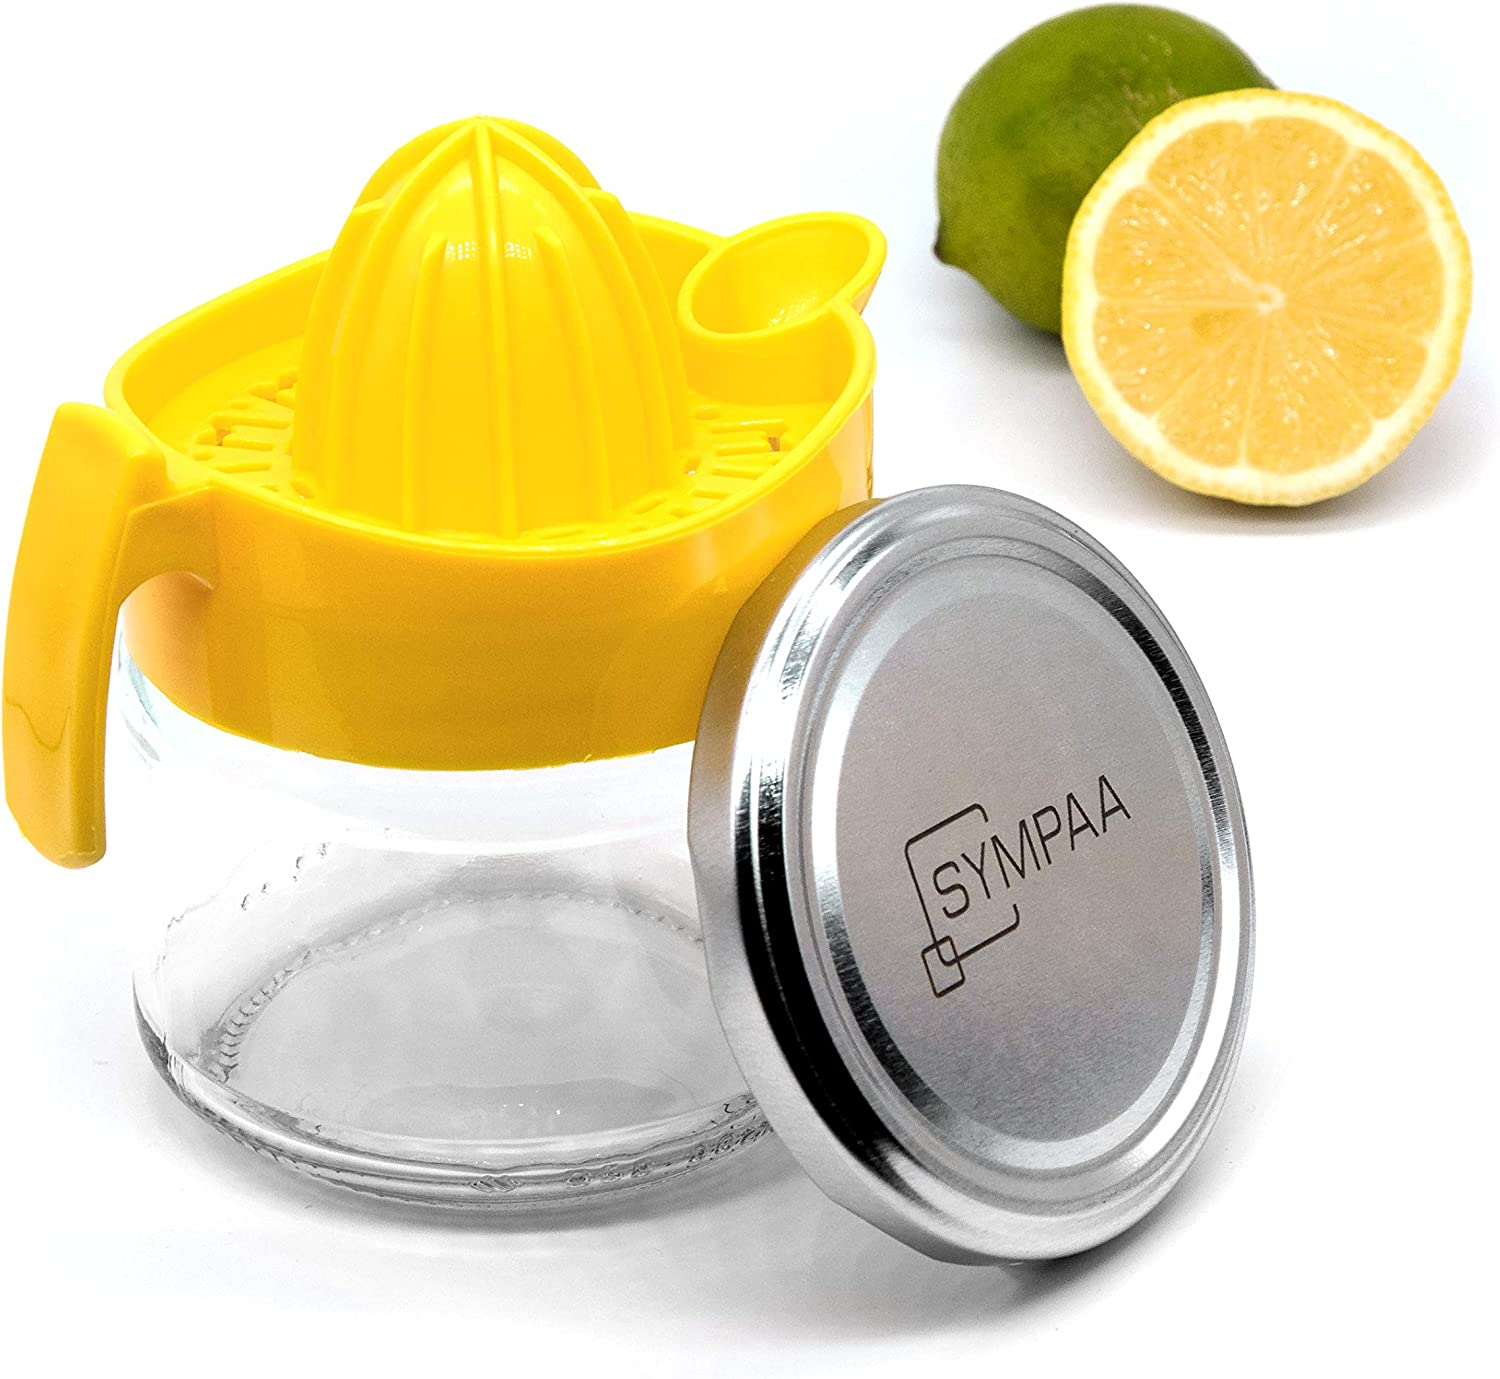 SYMPAA Lemon squeezer with glass container 220 ml high-quality citrus press including practical screw cap for long-term storage